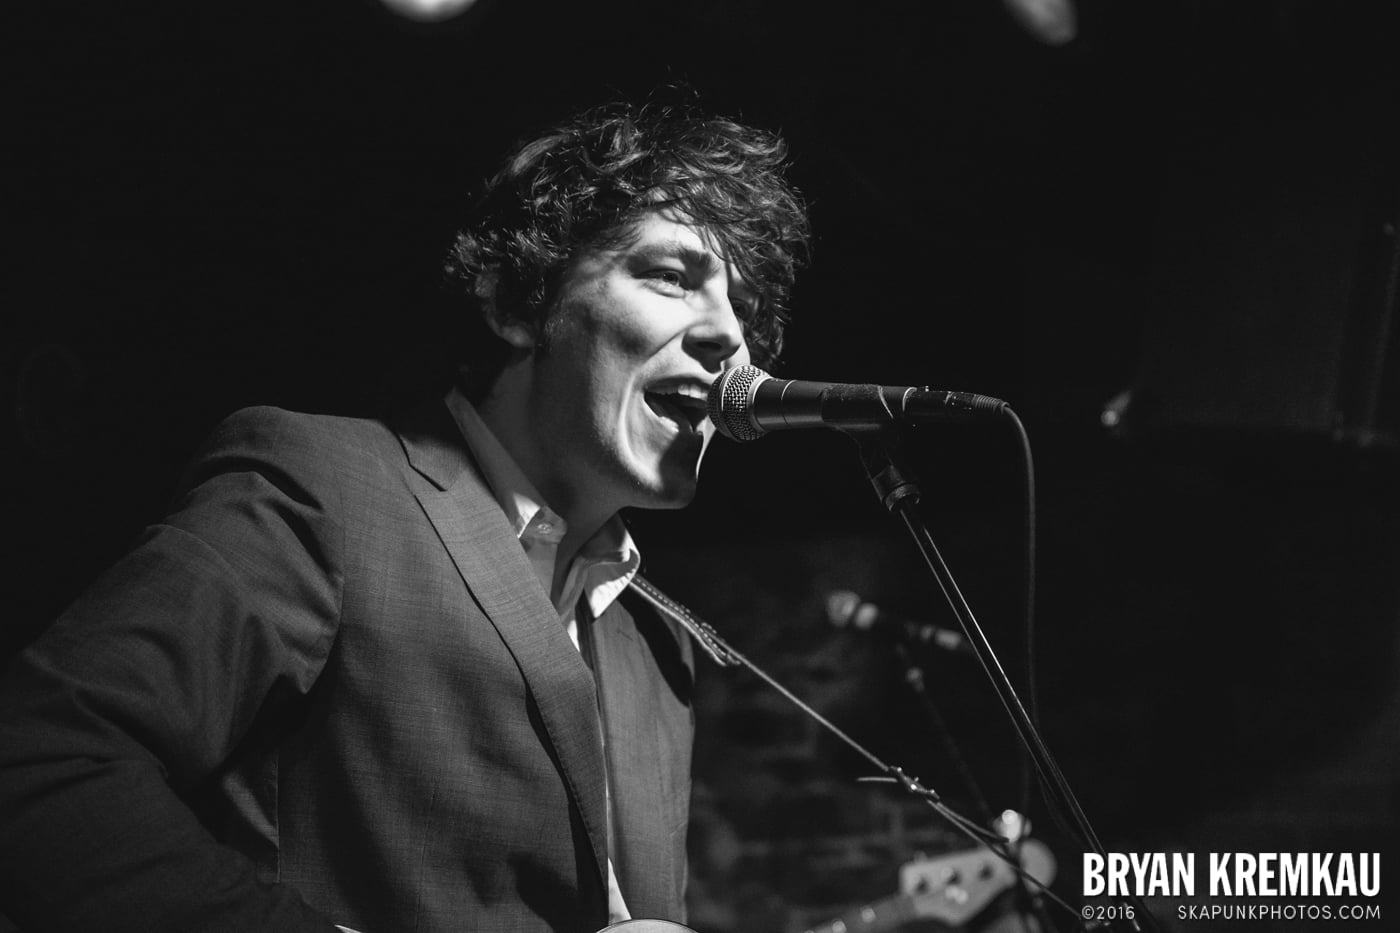 Trapper Schoepp & The Shades @ Bowery Electric, NYC - 11.20.14 (38)